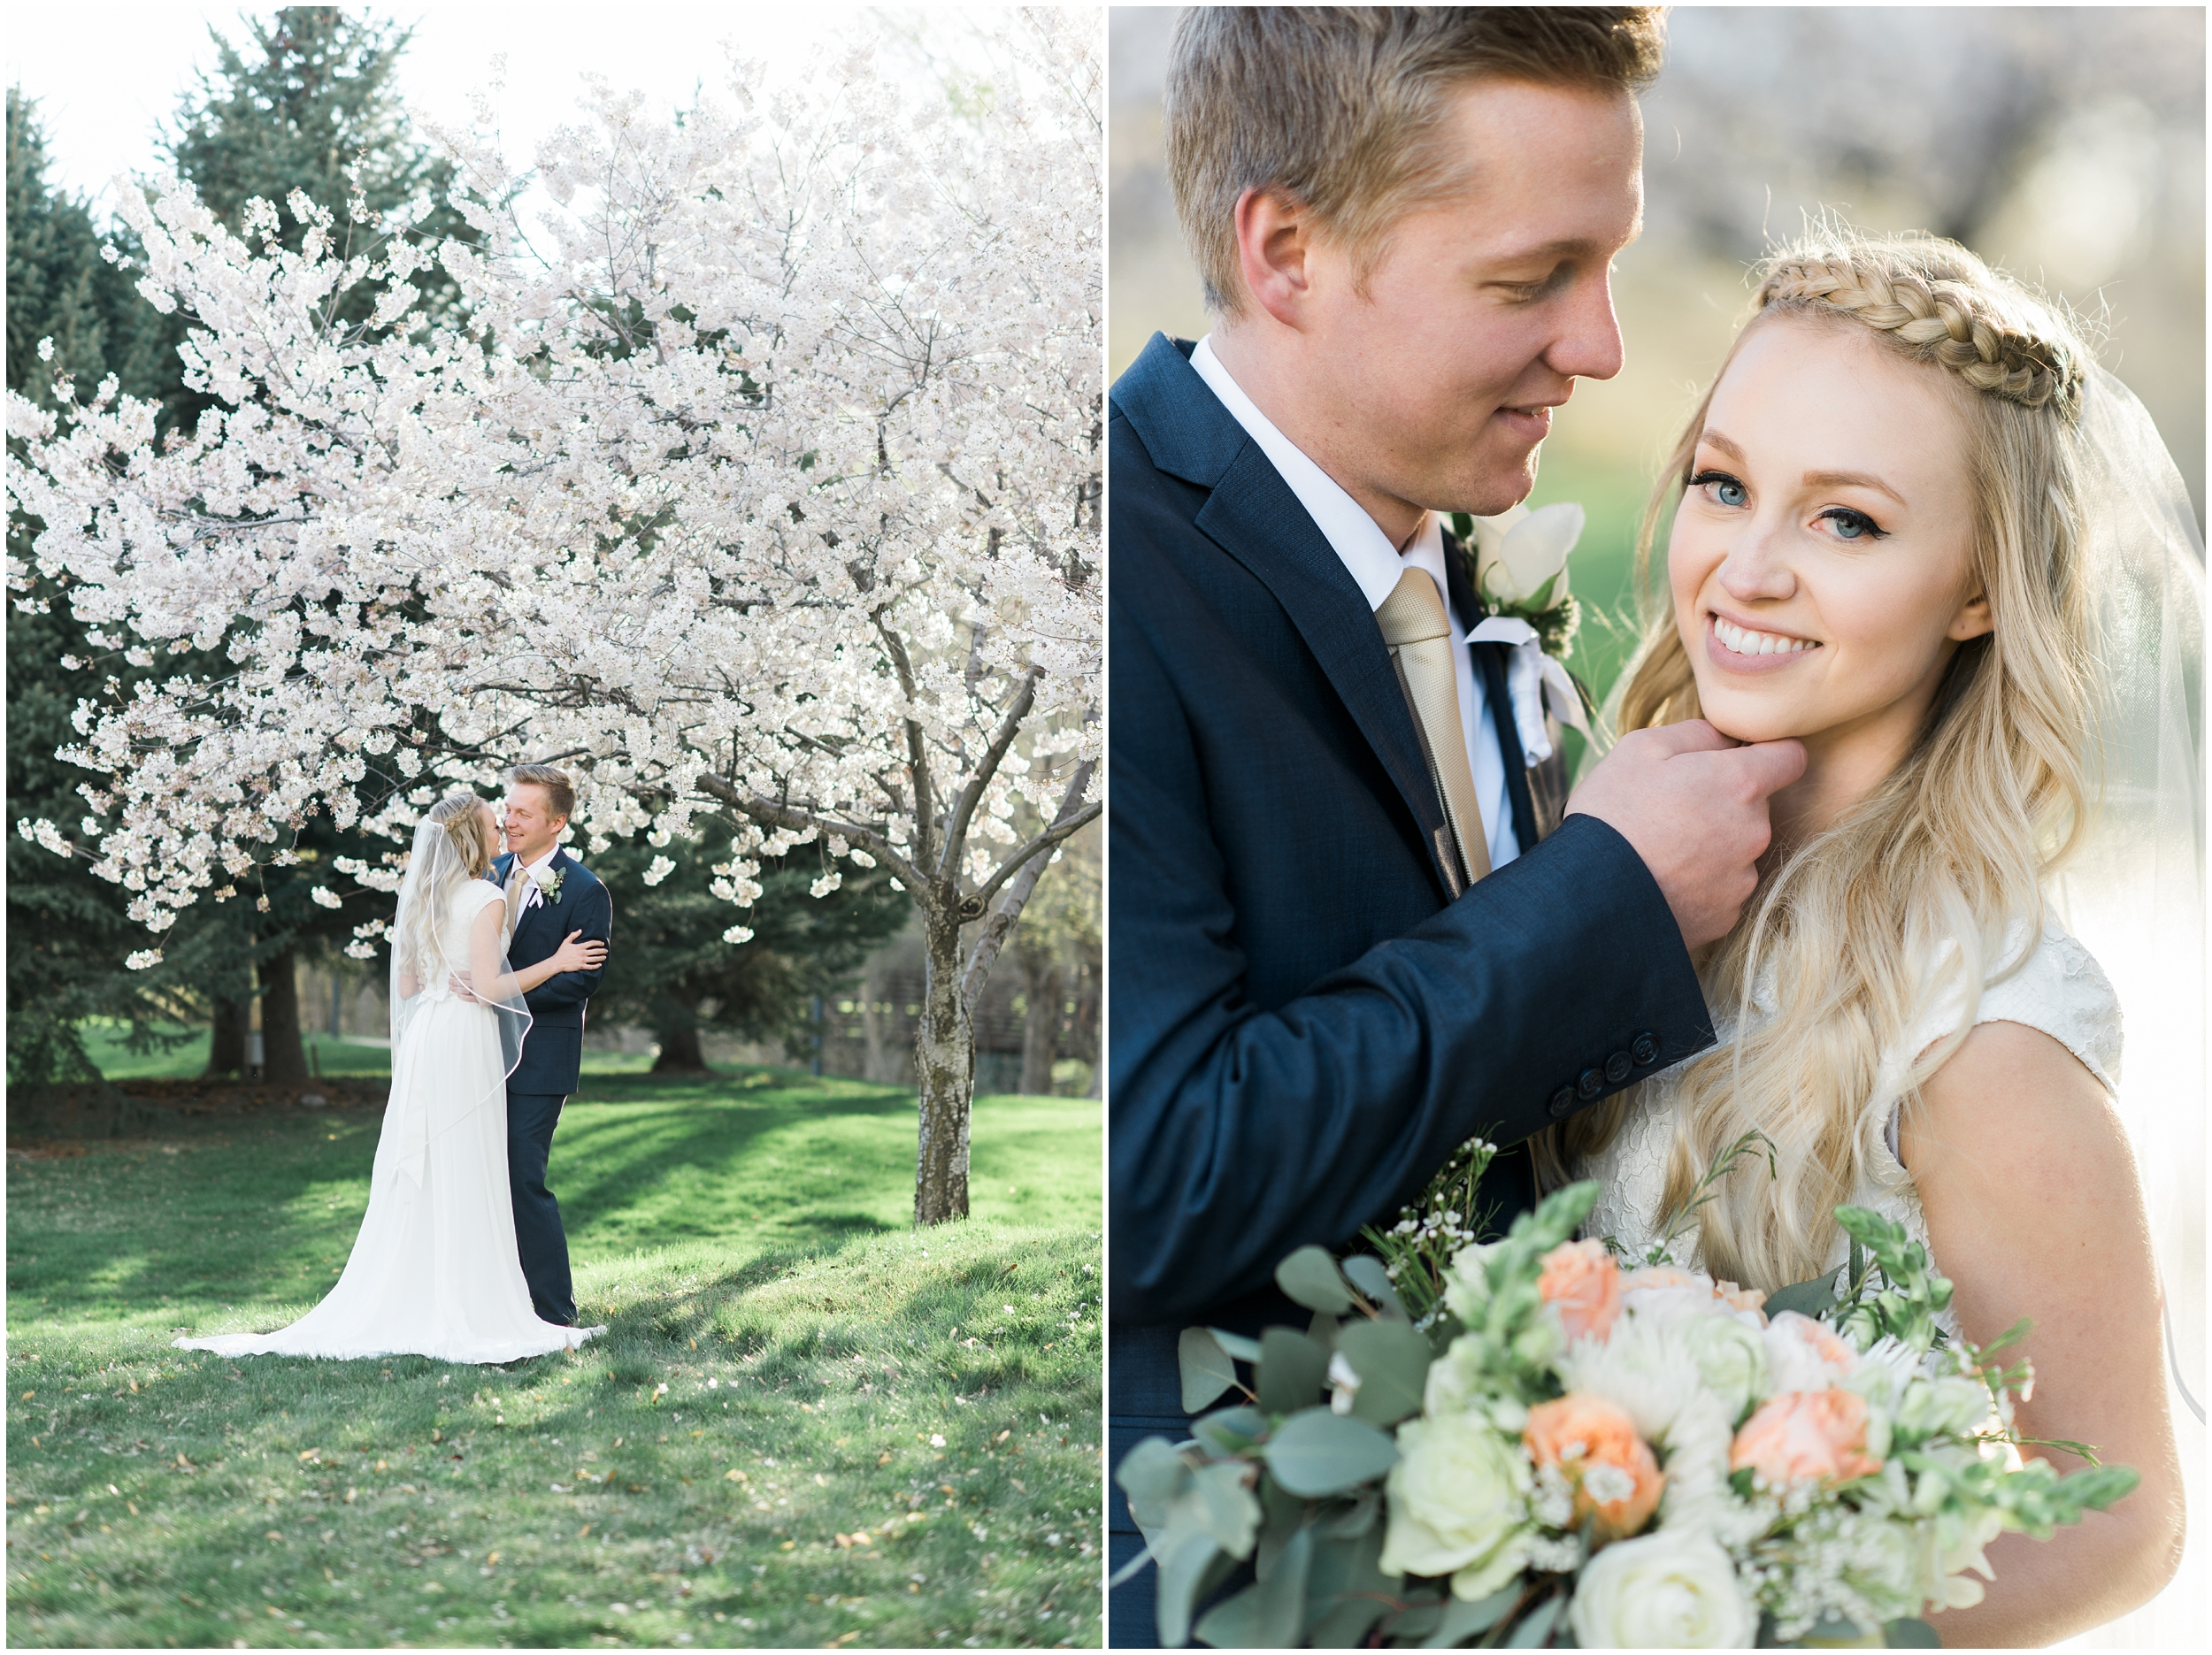 Kristina Curtis, blush flowers, spring blossoms photos, spring engagements, outdoor engagements, long veil, blush and navy wedding, spring outdoor engagements, photographers in Utah, Utah family photographer, family photos Utah, Kristina Curtis photography, Kristina Curtis Photographer, www.kristinacurtisphotography.com